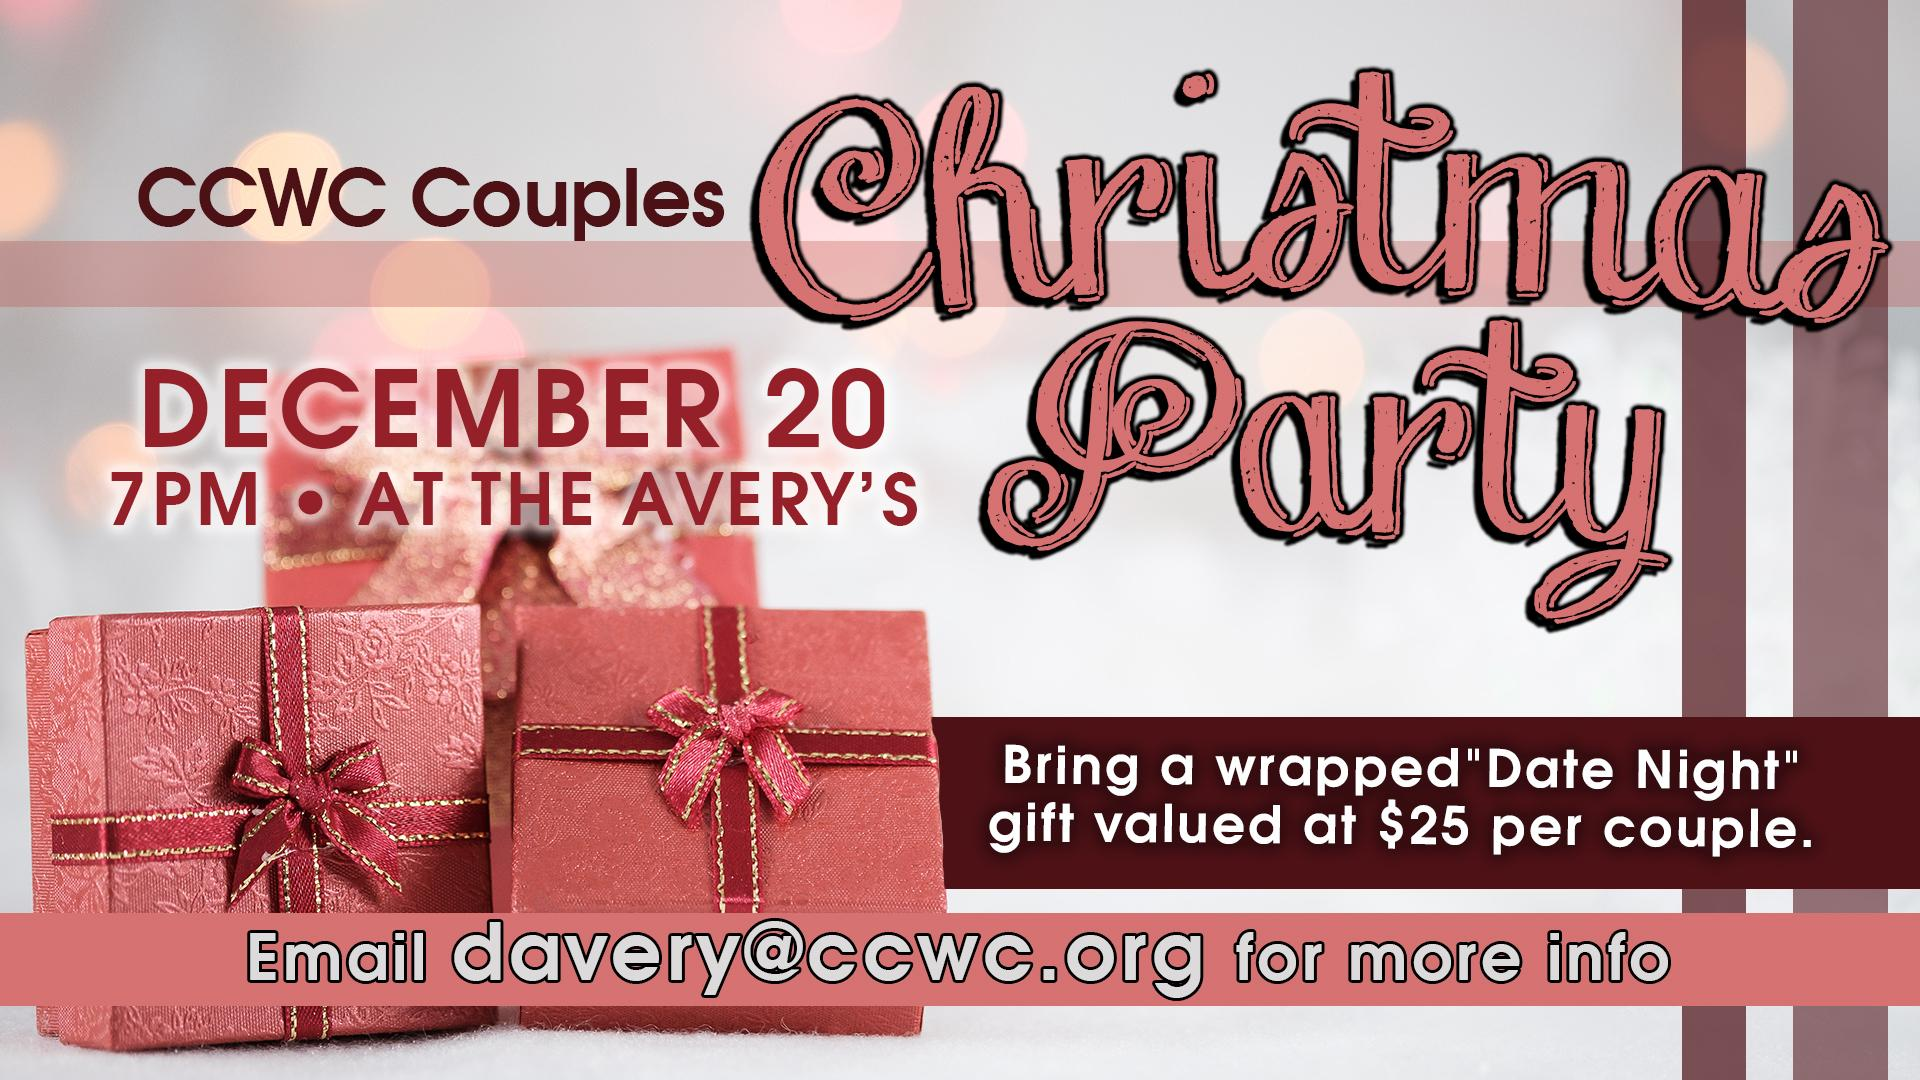 CCWC Couples Christmas Party